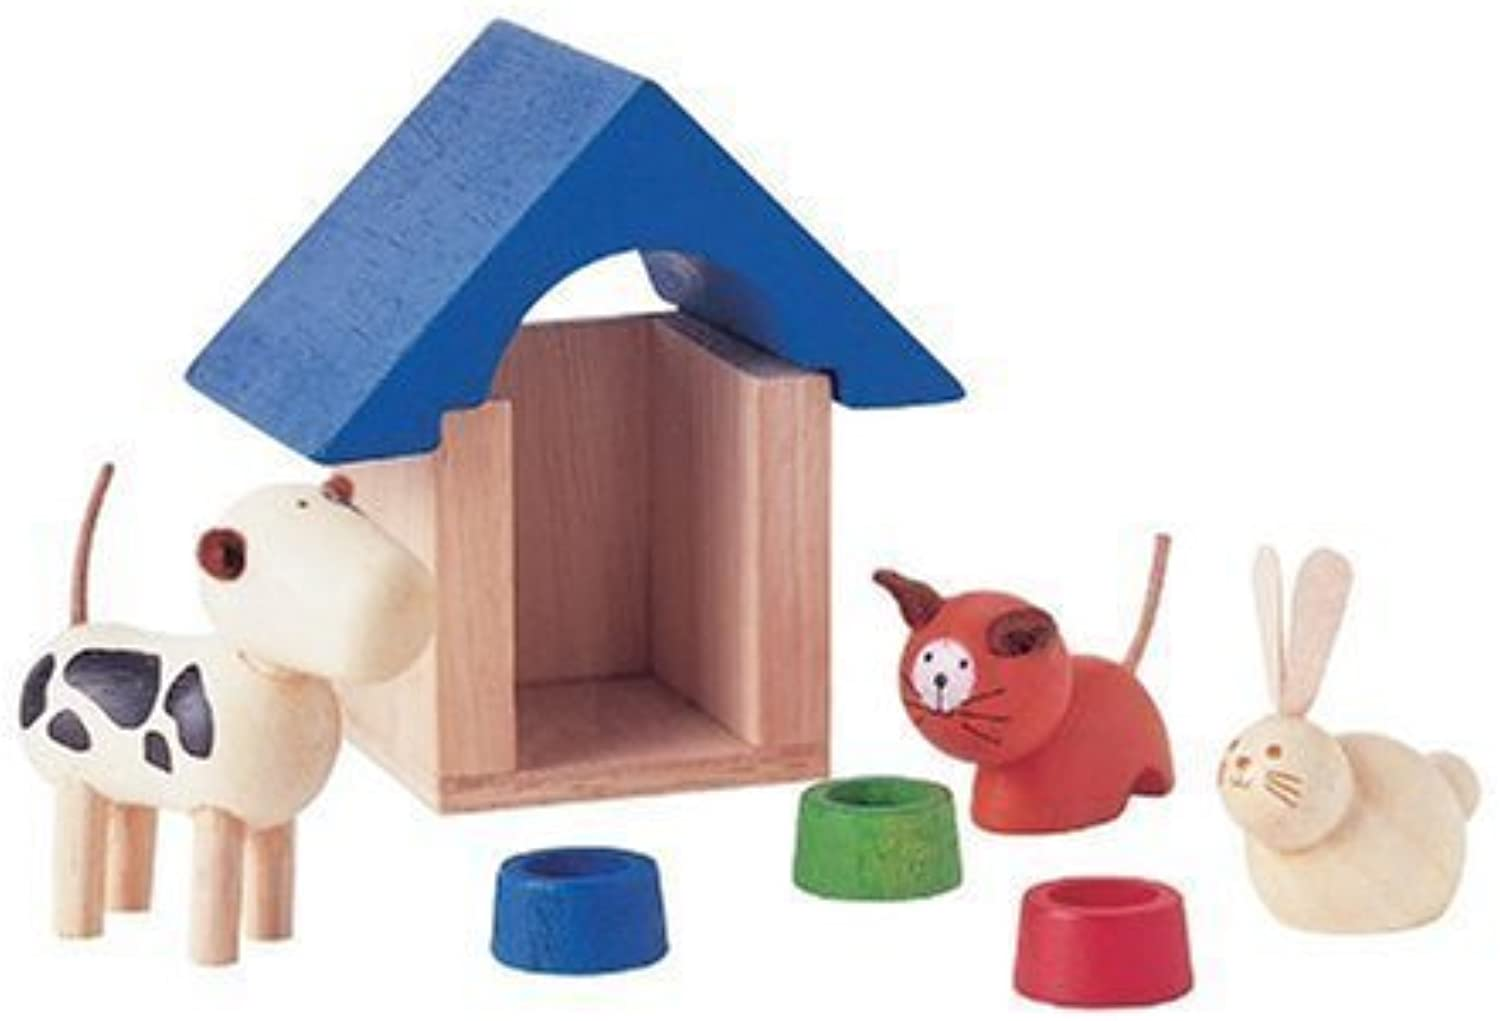 PlanToys Plan Dollhouse Pet and Accessories Furniture by Plan Toys